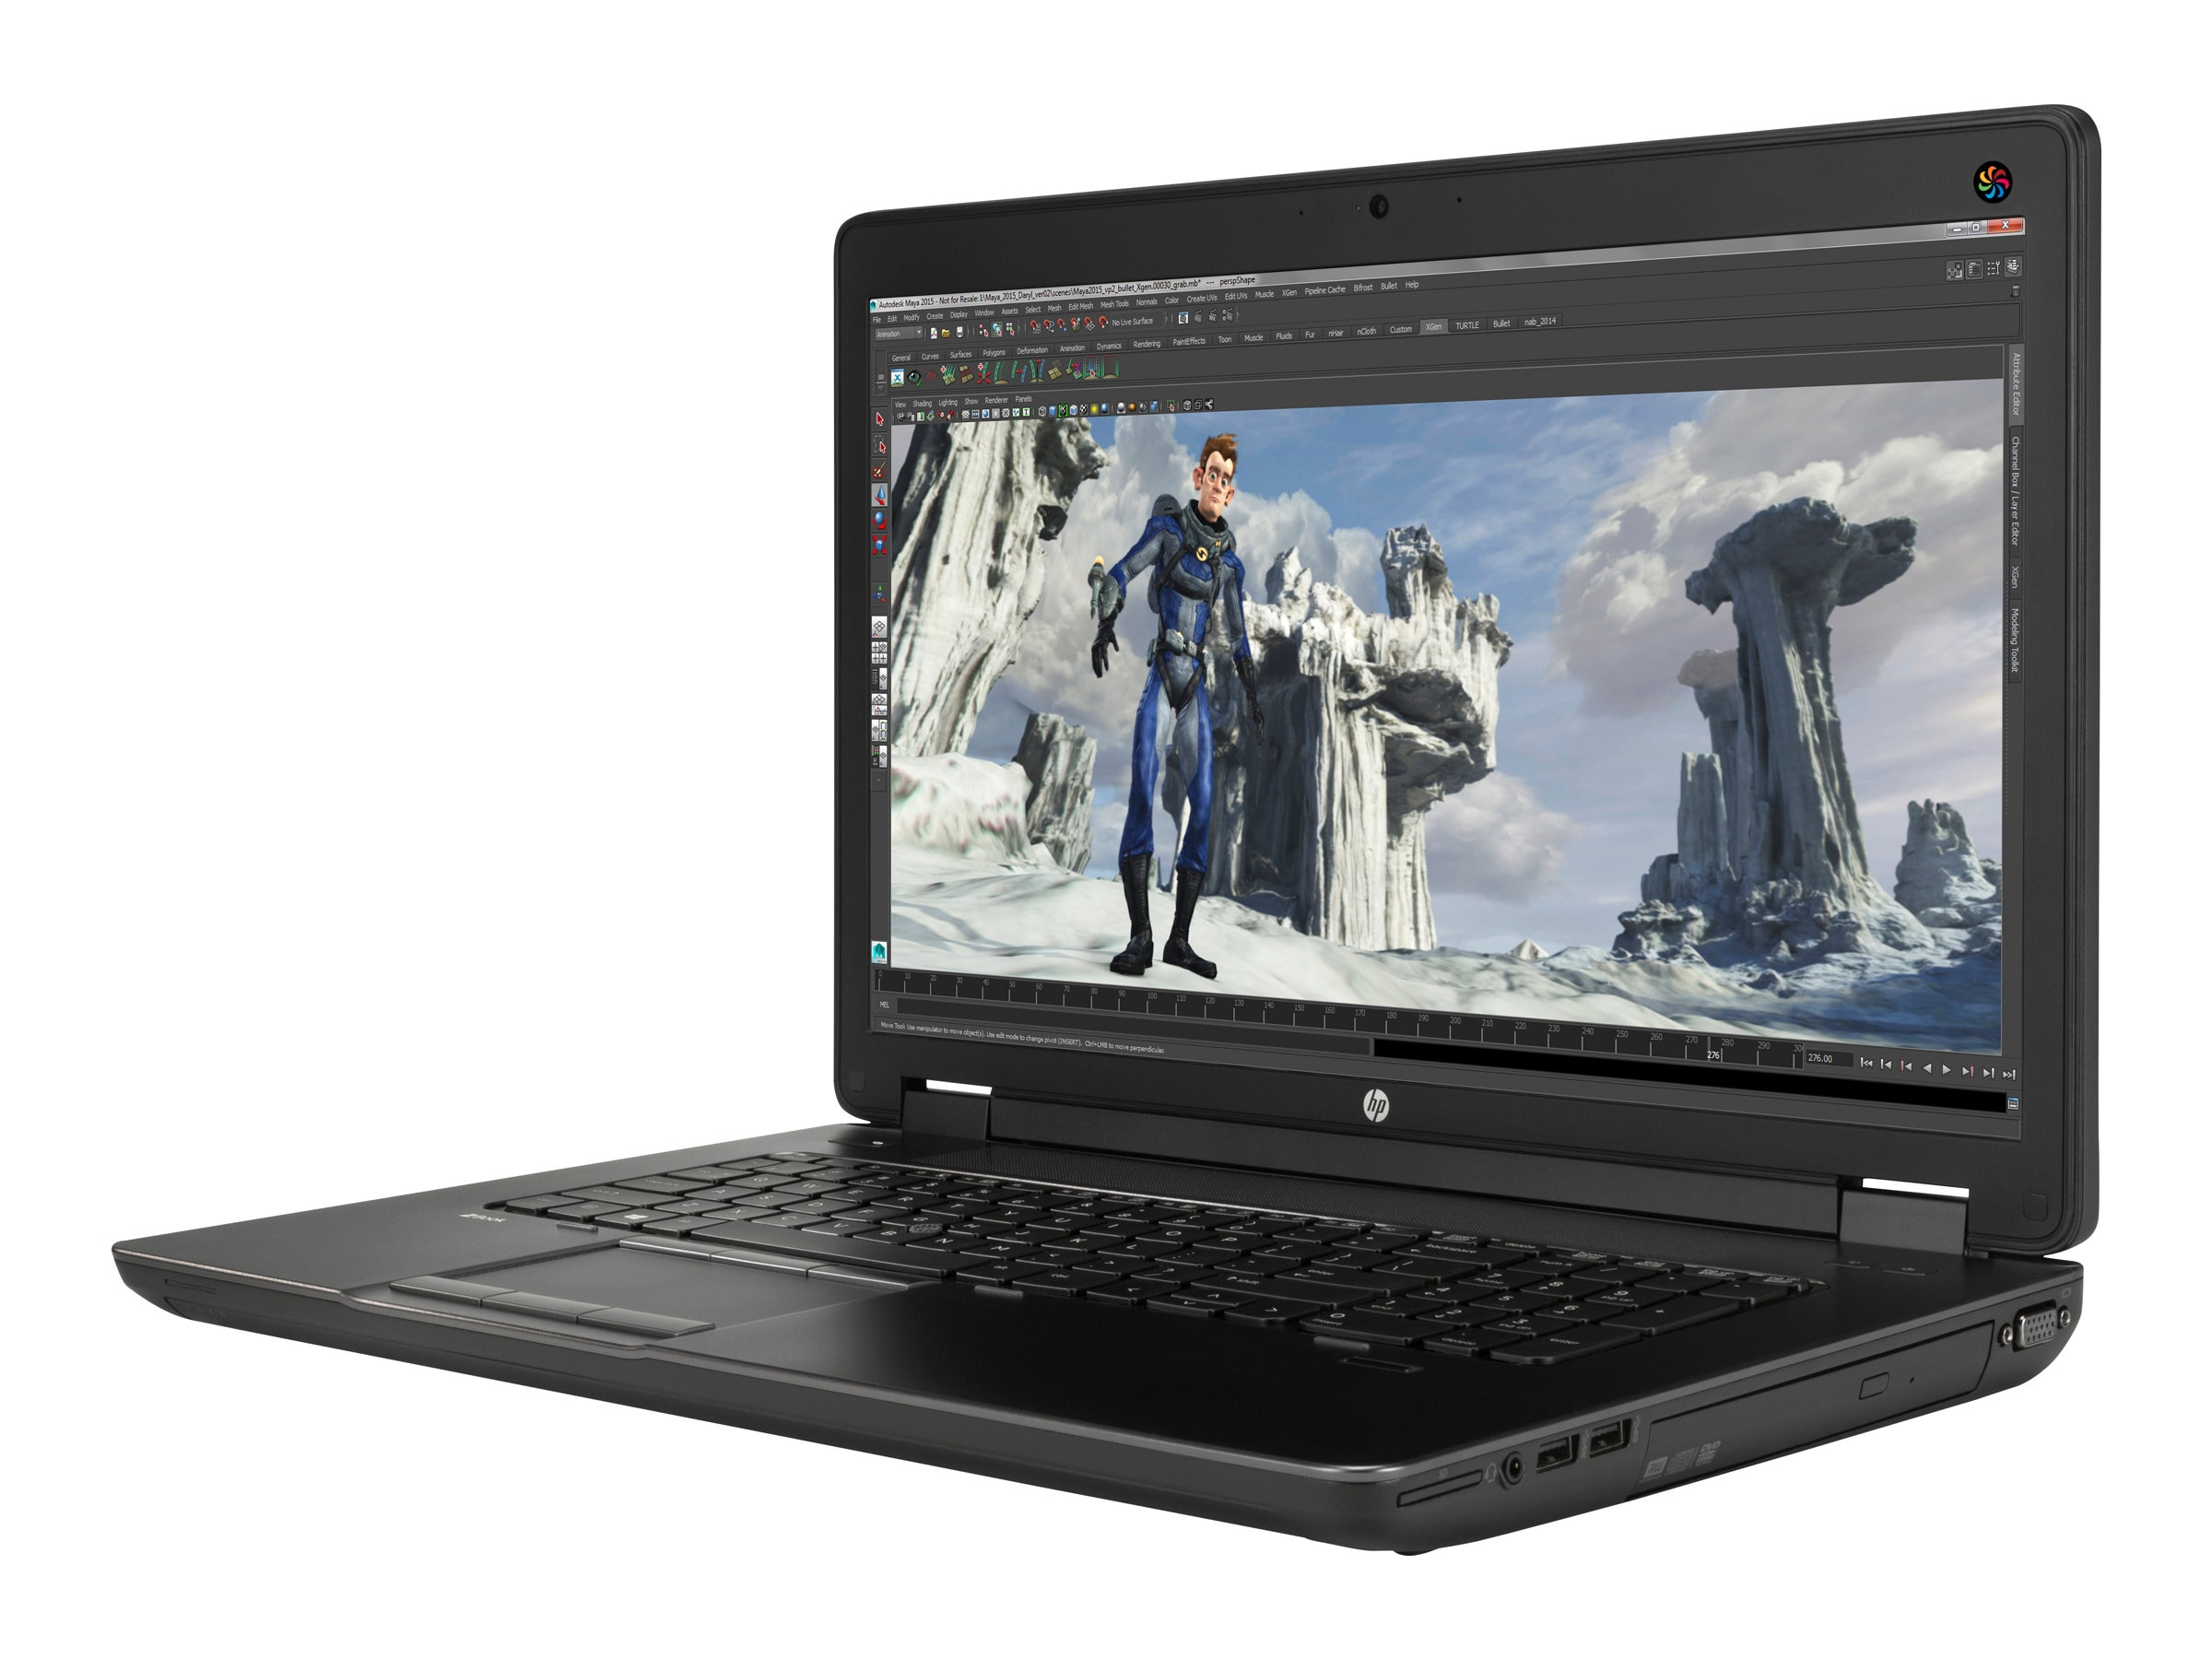 HP ZBook 17 G2 Core i7-4710MQ 2.5GHz 8GB 256GB SSD DVD ac BT FR K2200M 17.3 FHD W7P64-W8.1P, K4K42UT#ABA, 18370923, Workstations - Mobile